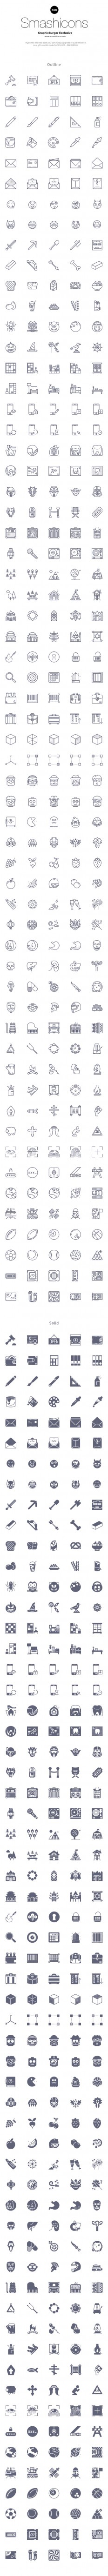 Smashicons: 300 Free Icons | GraphicBurger